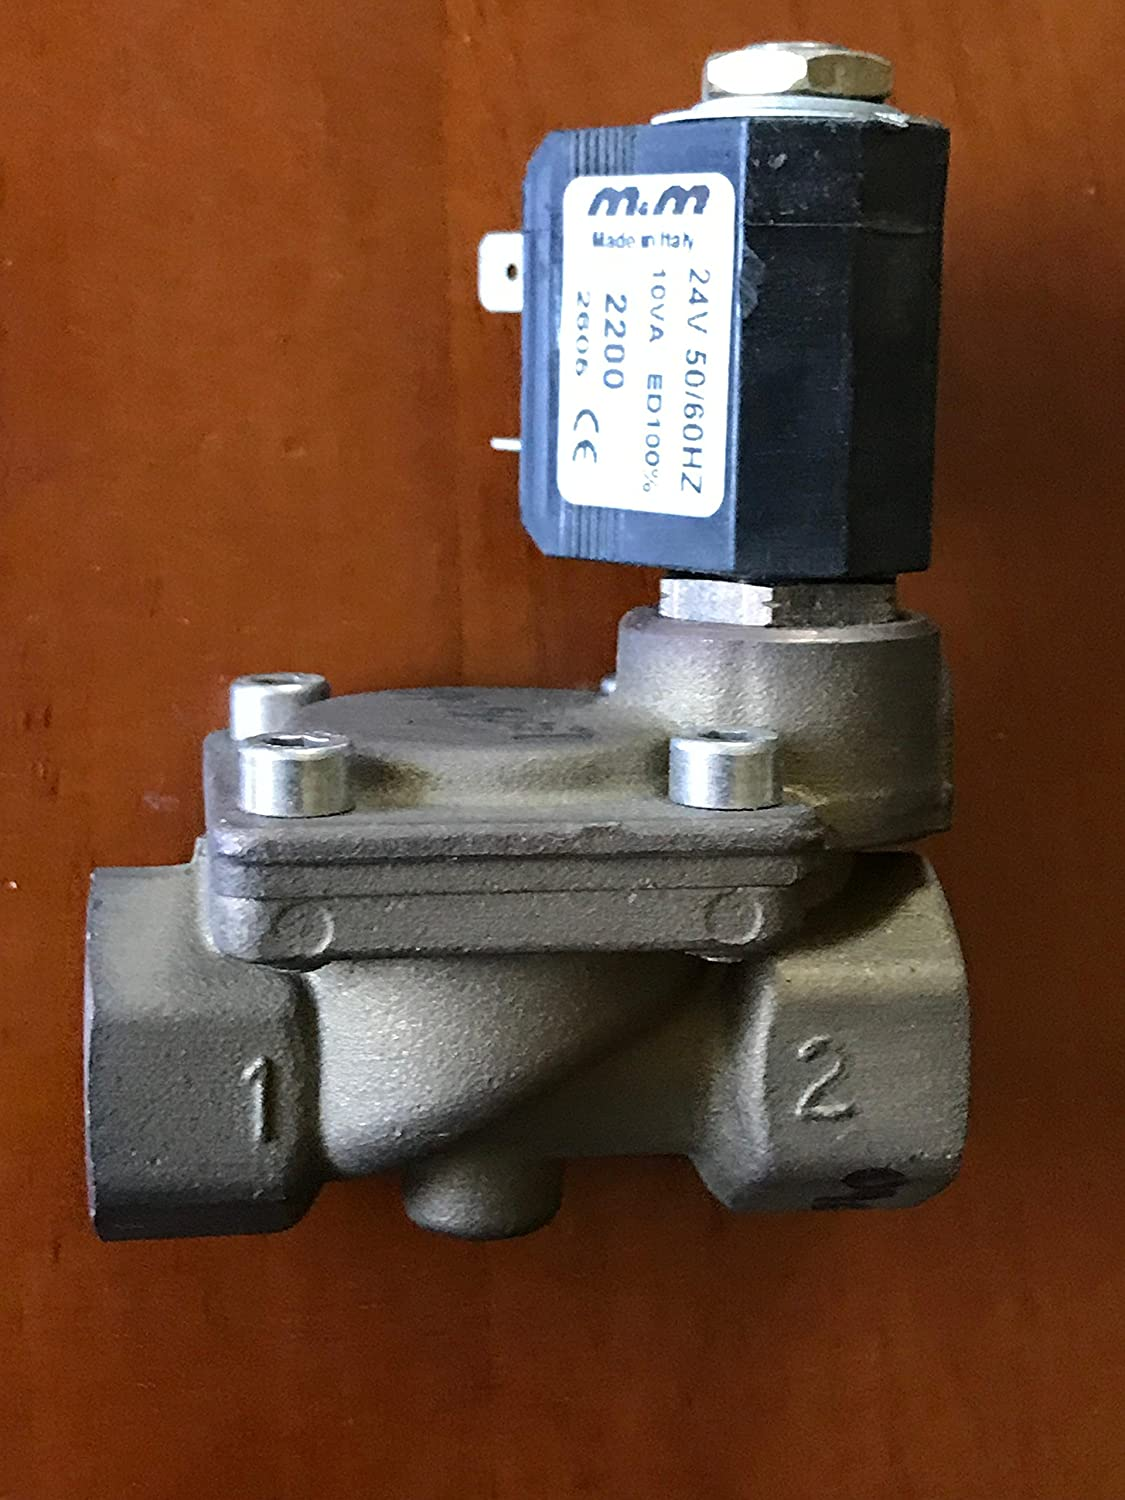 Water Solenoid Valve for Firbimatic, Union, Realstar dry cleaning machines V7374 0905001 #0905007